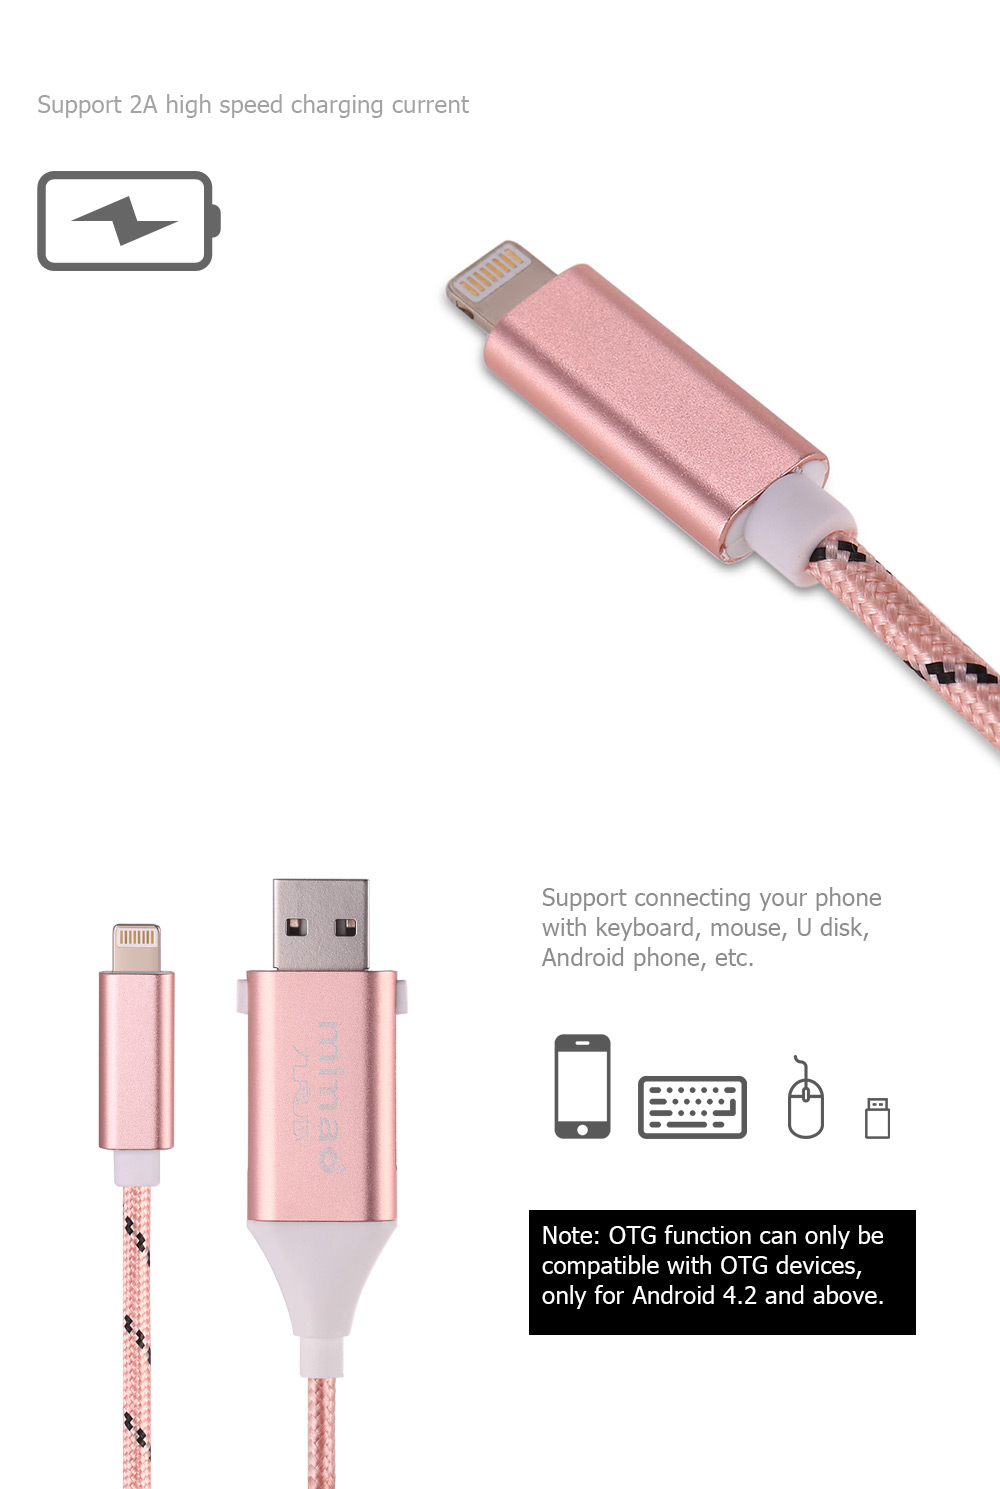 Mimao USB OTG 2-in-1 Cable 8 Pin Data Sync Charging Cord - 1m